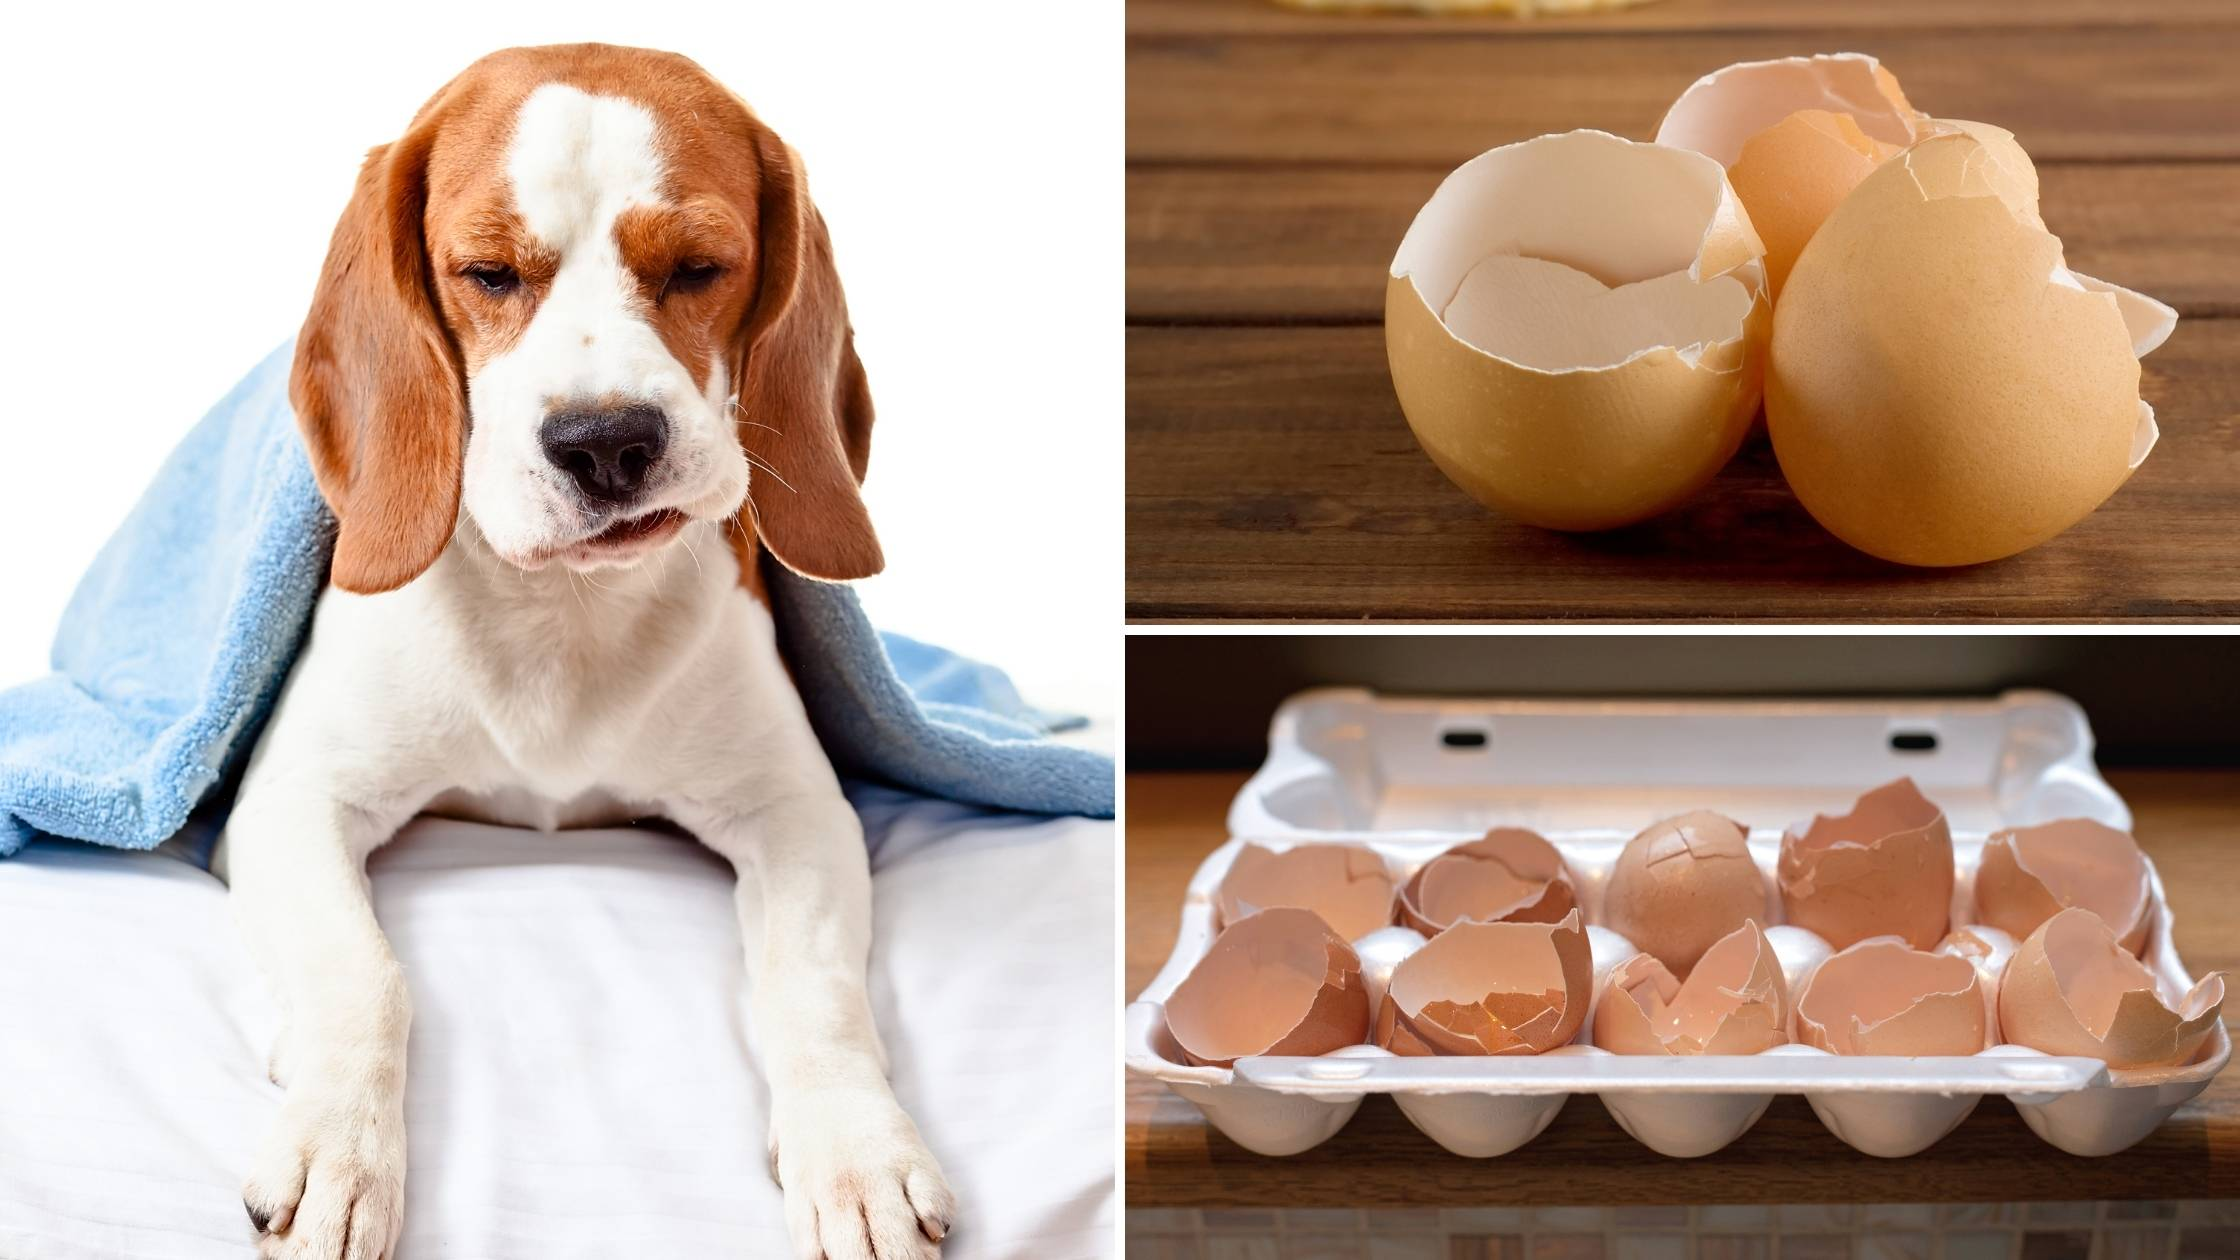 Can dogs eat egg shells